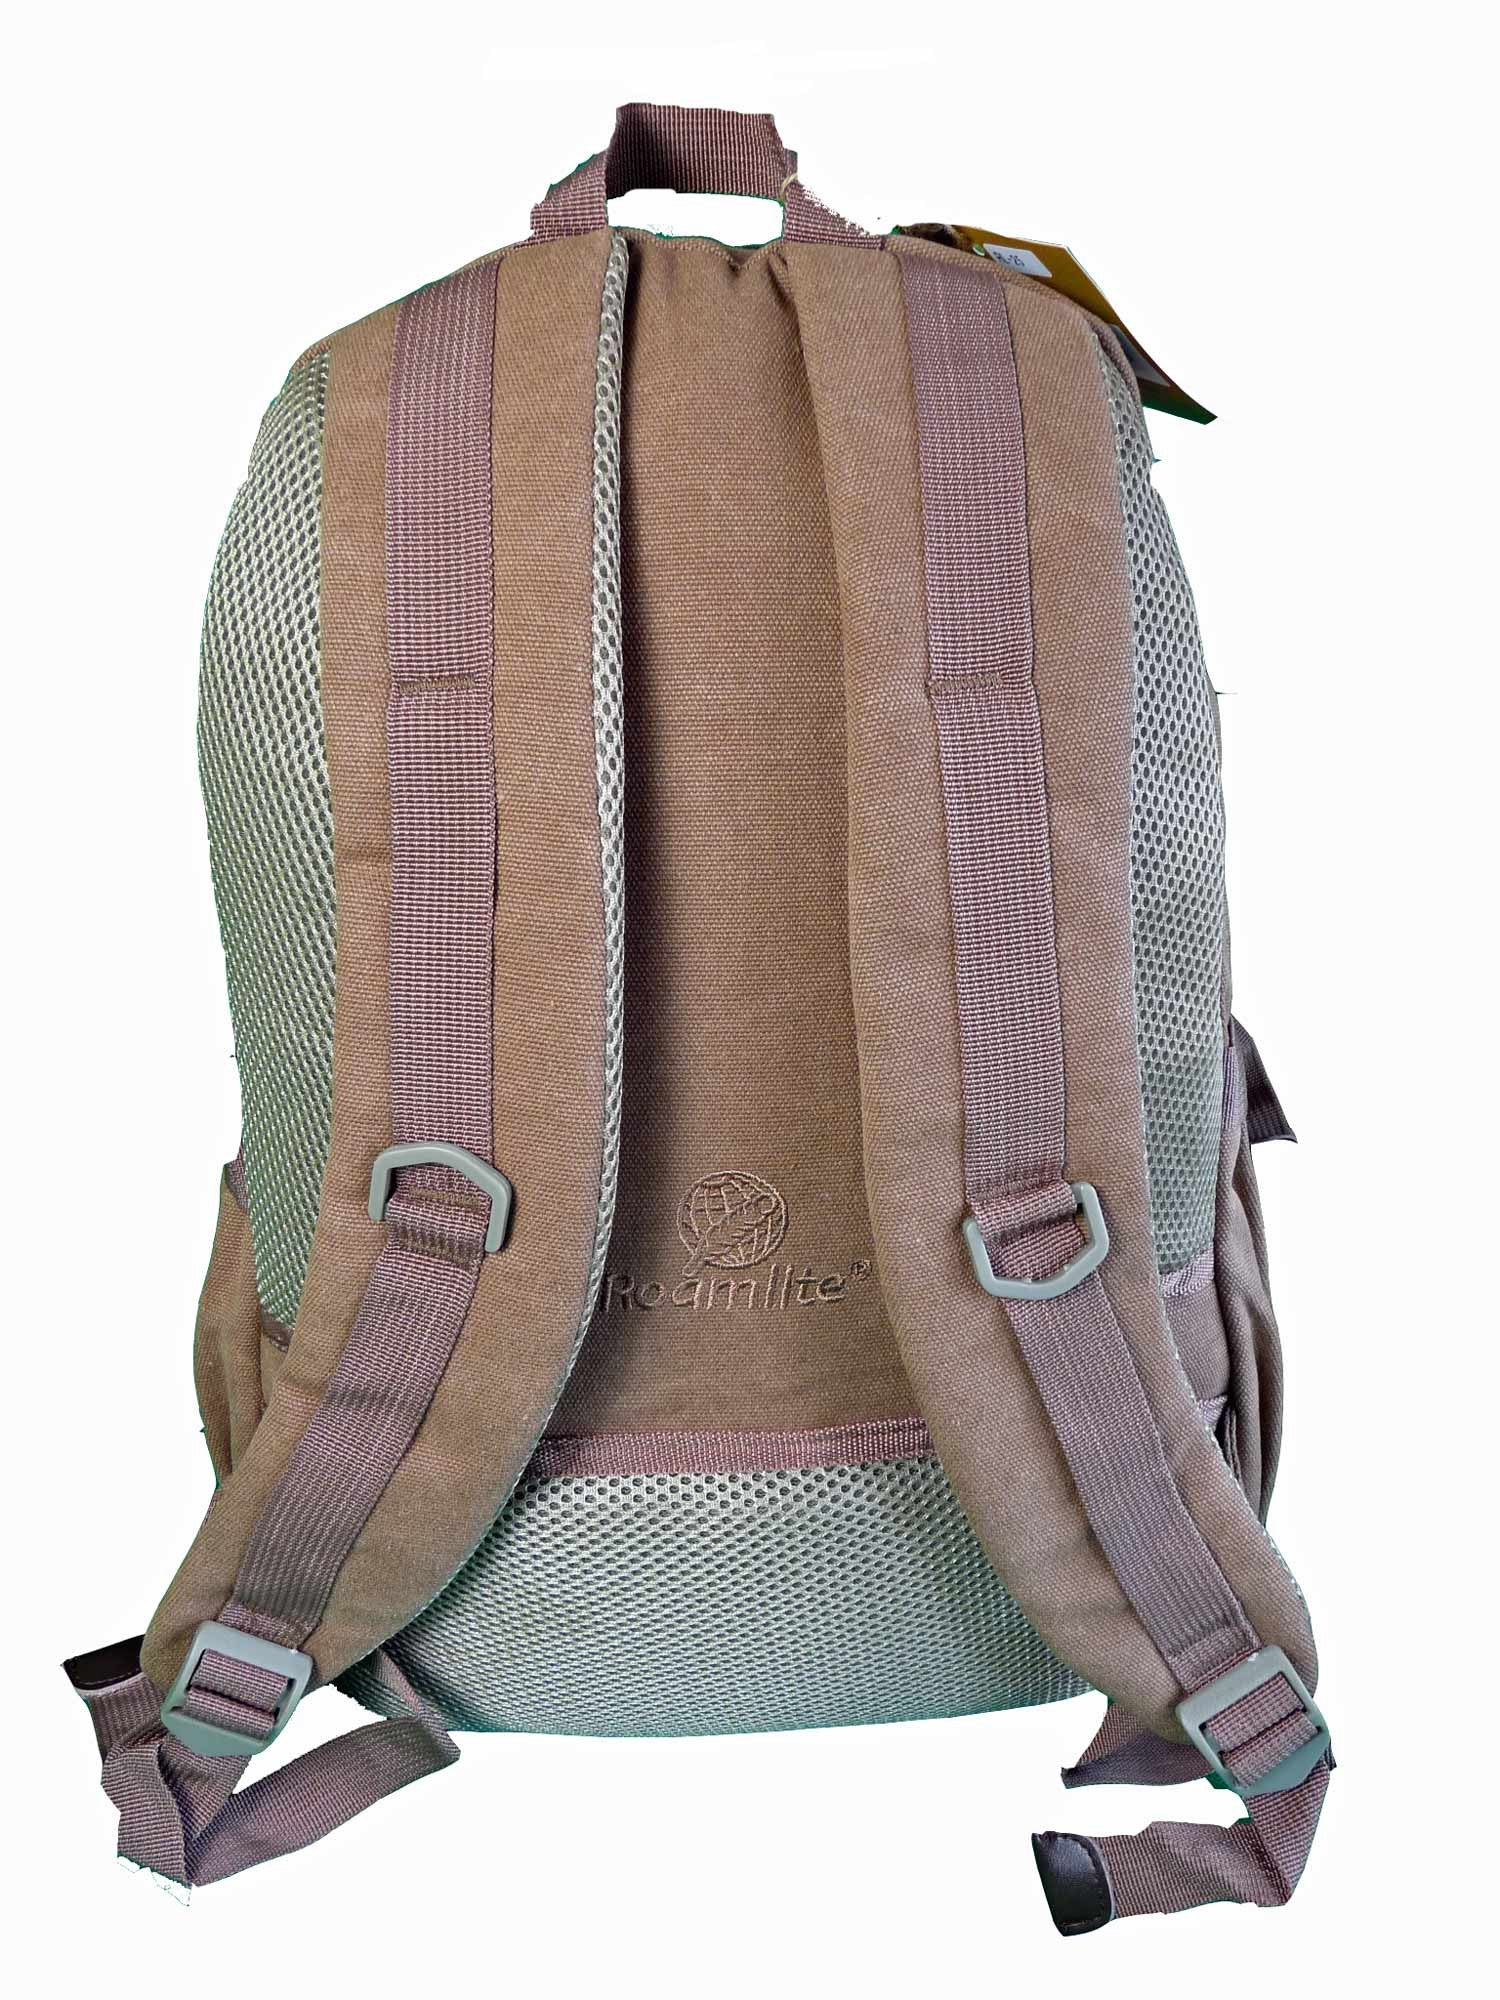 MacBook Air Backpack Rucksack Bag RL25B rear view